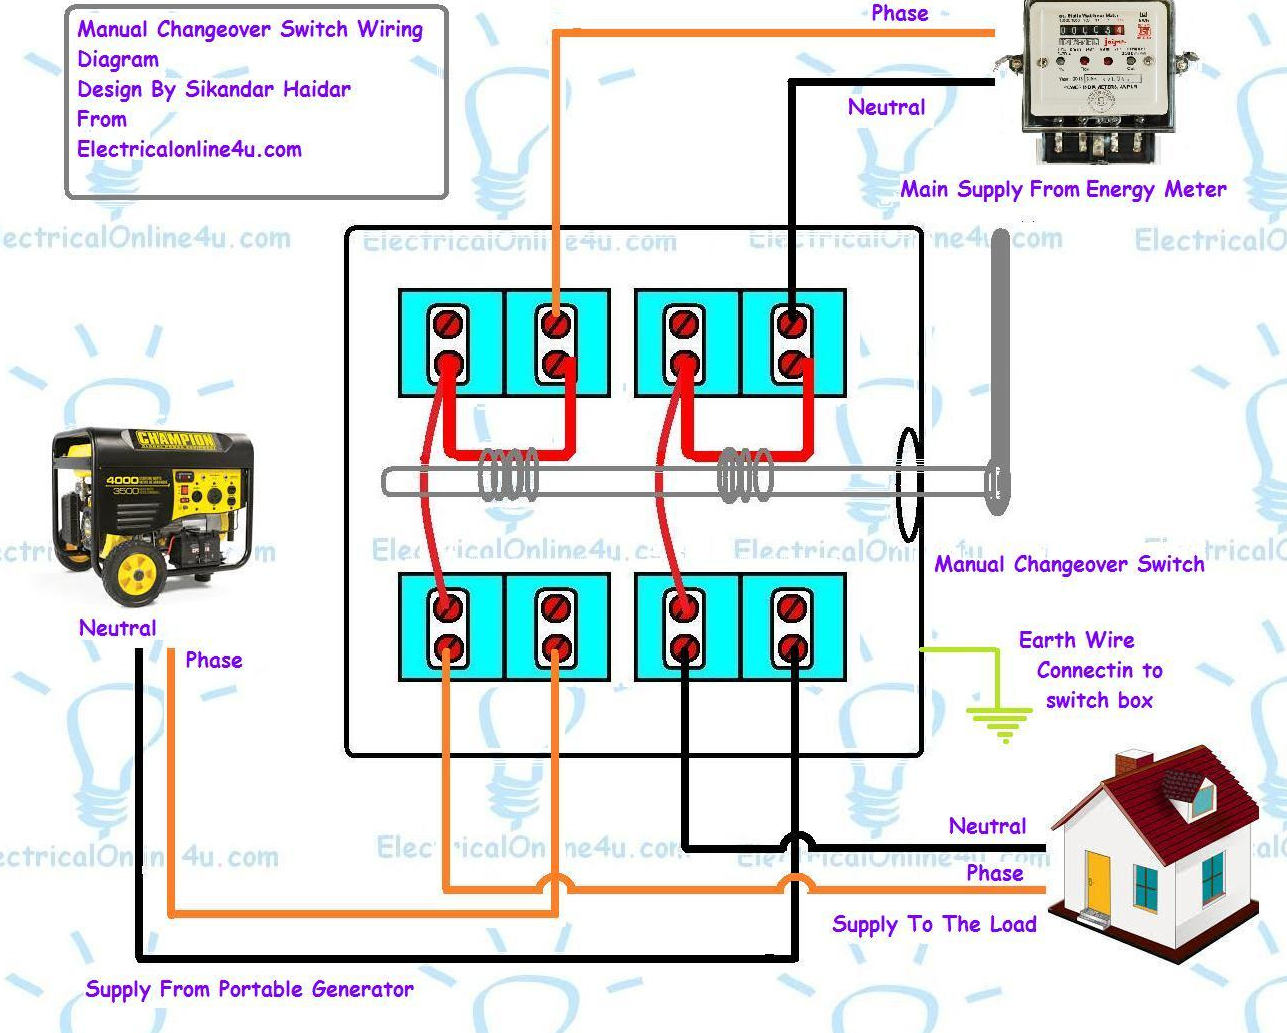 hight resolution of manual changeover switch wiring diagram for portable generator